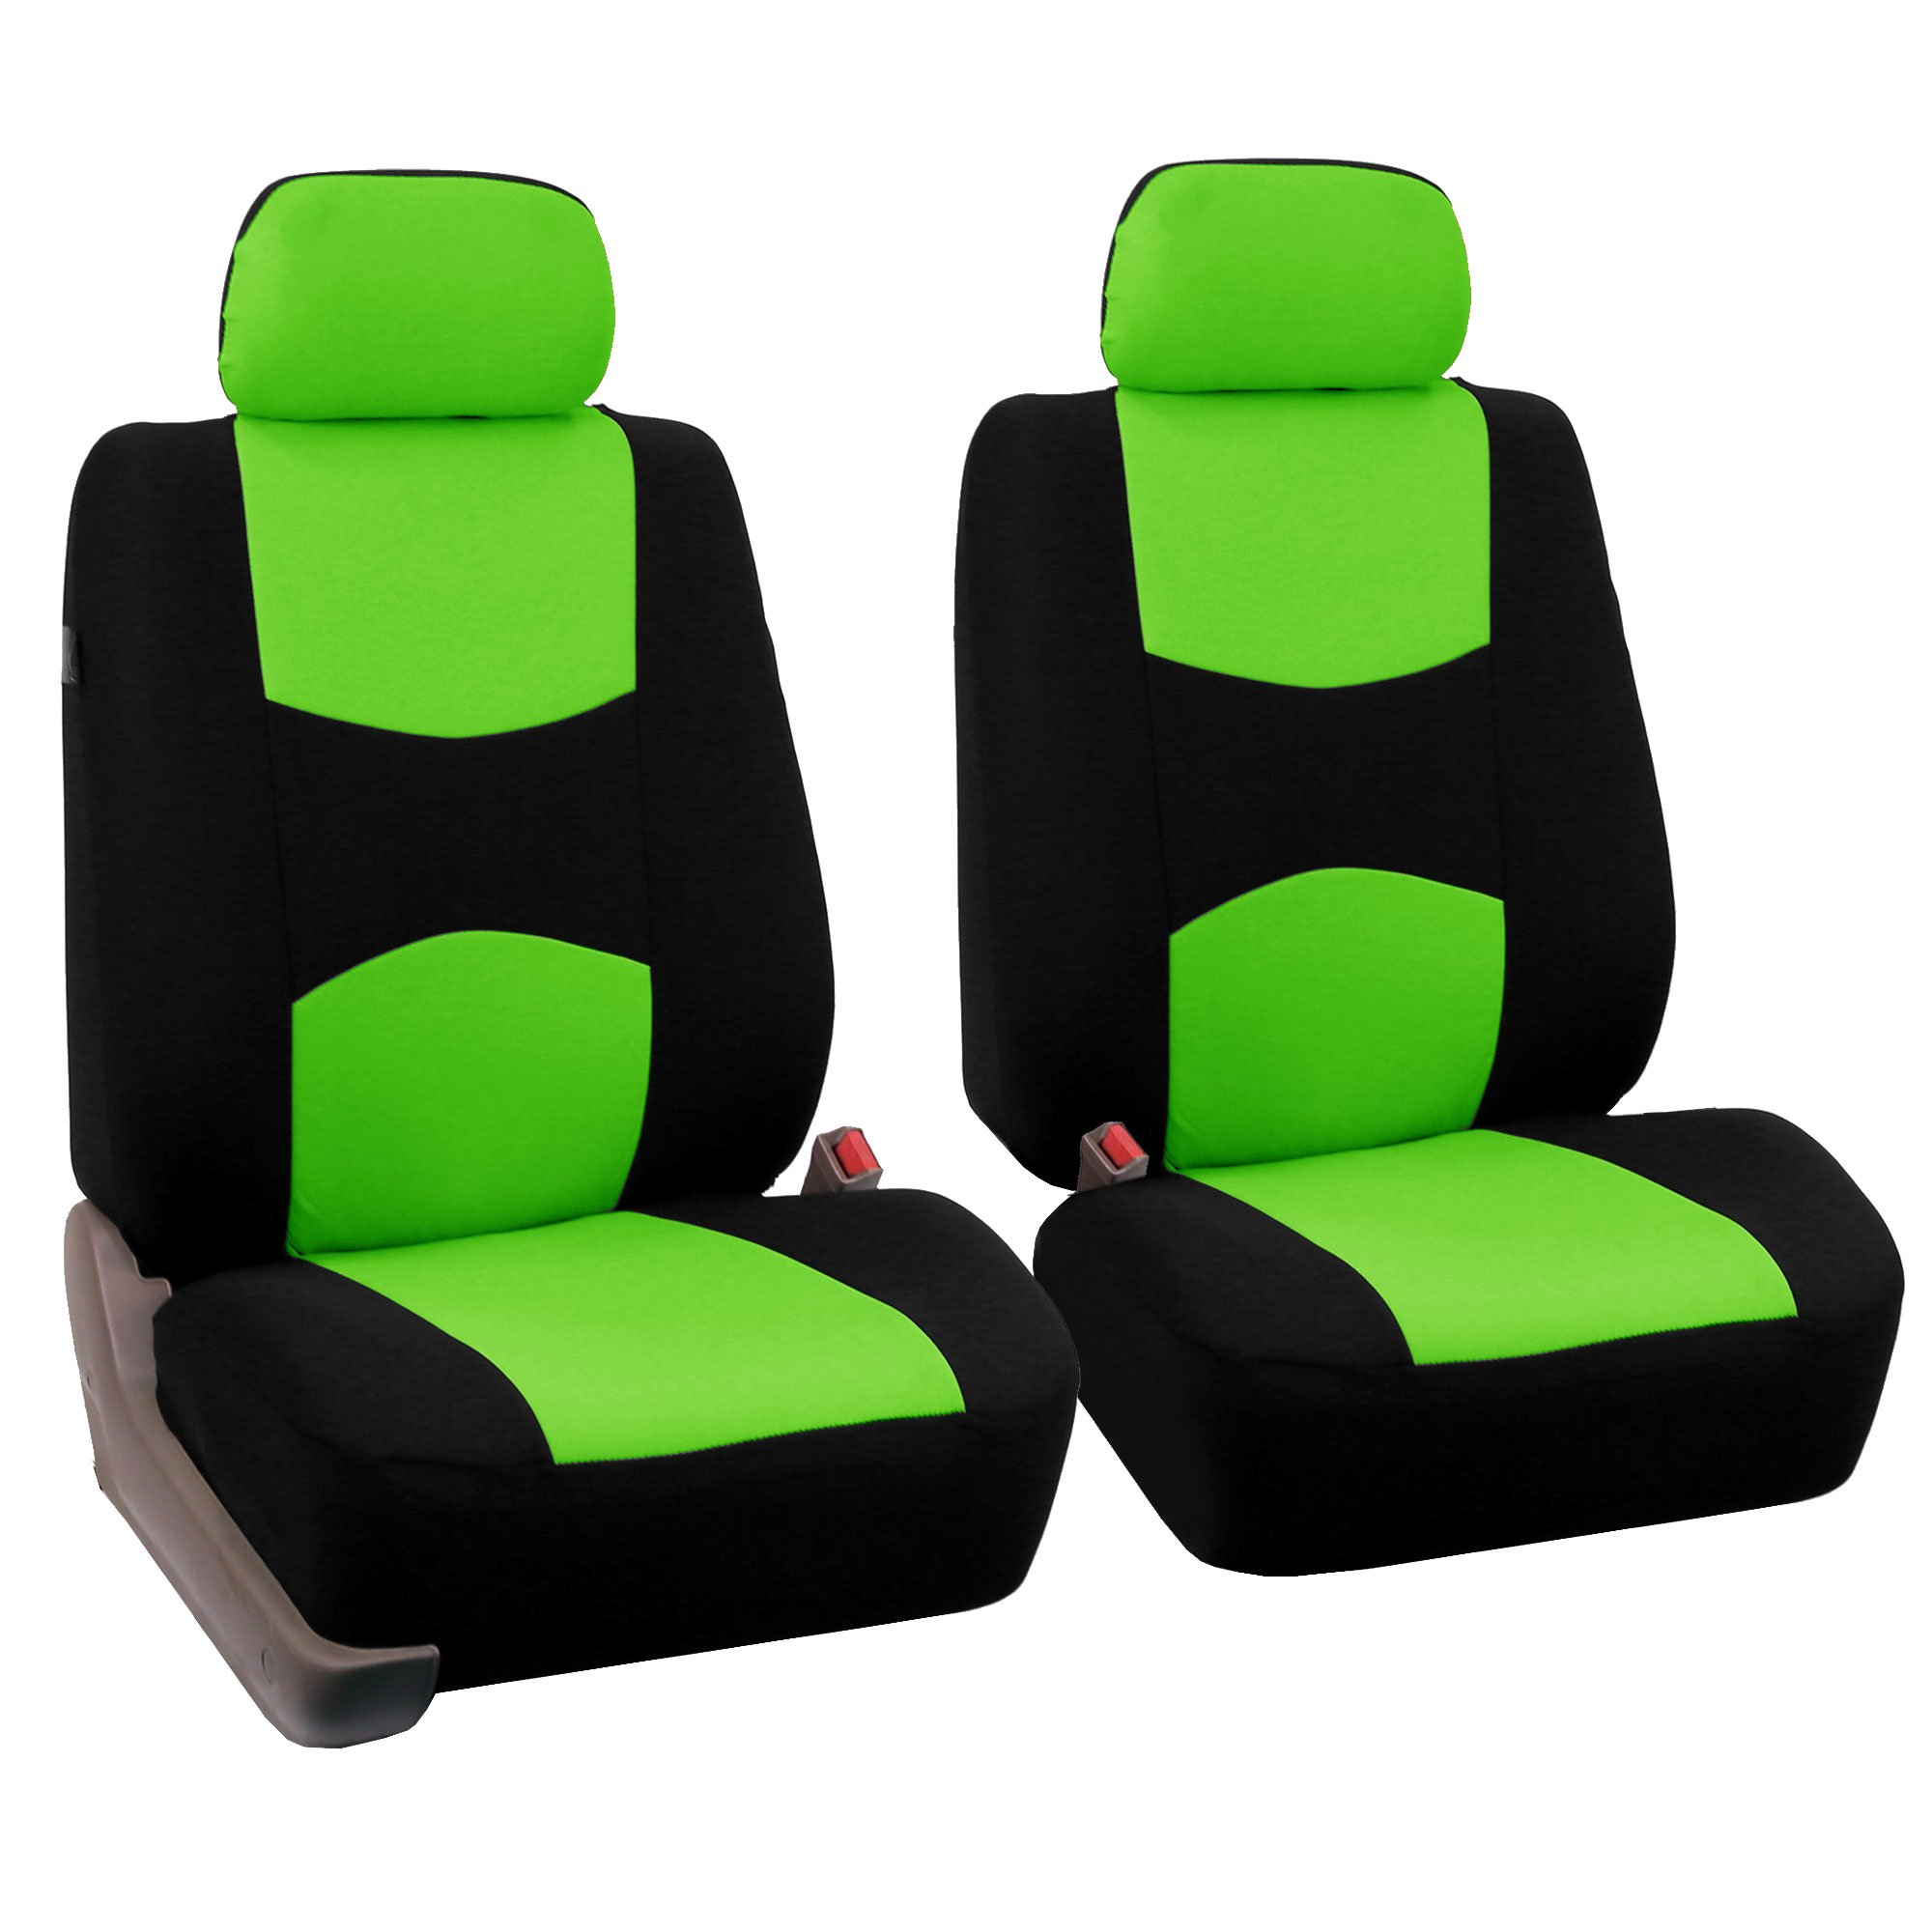 FH-FB050102 Flat Cloth Pair Bucket Seat Covers Green / Black Color- Fit Most Car, Truck, Suv, or Van